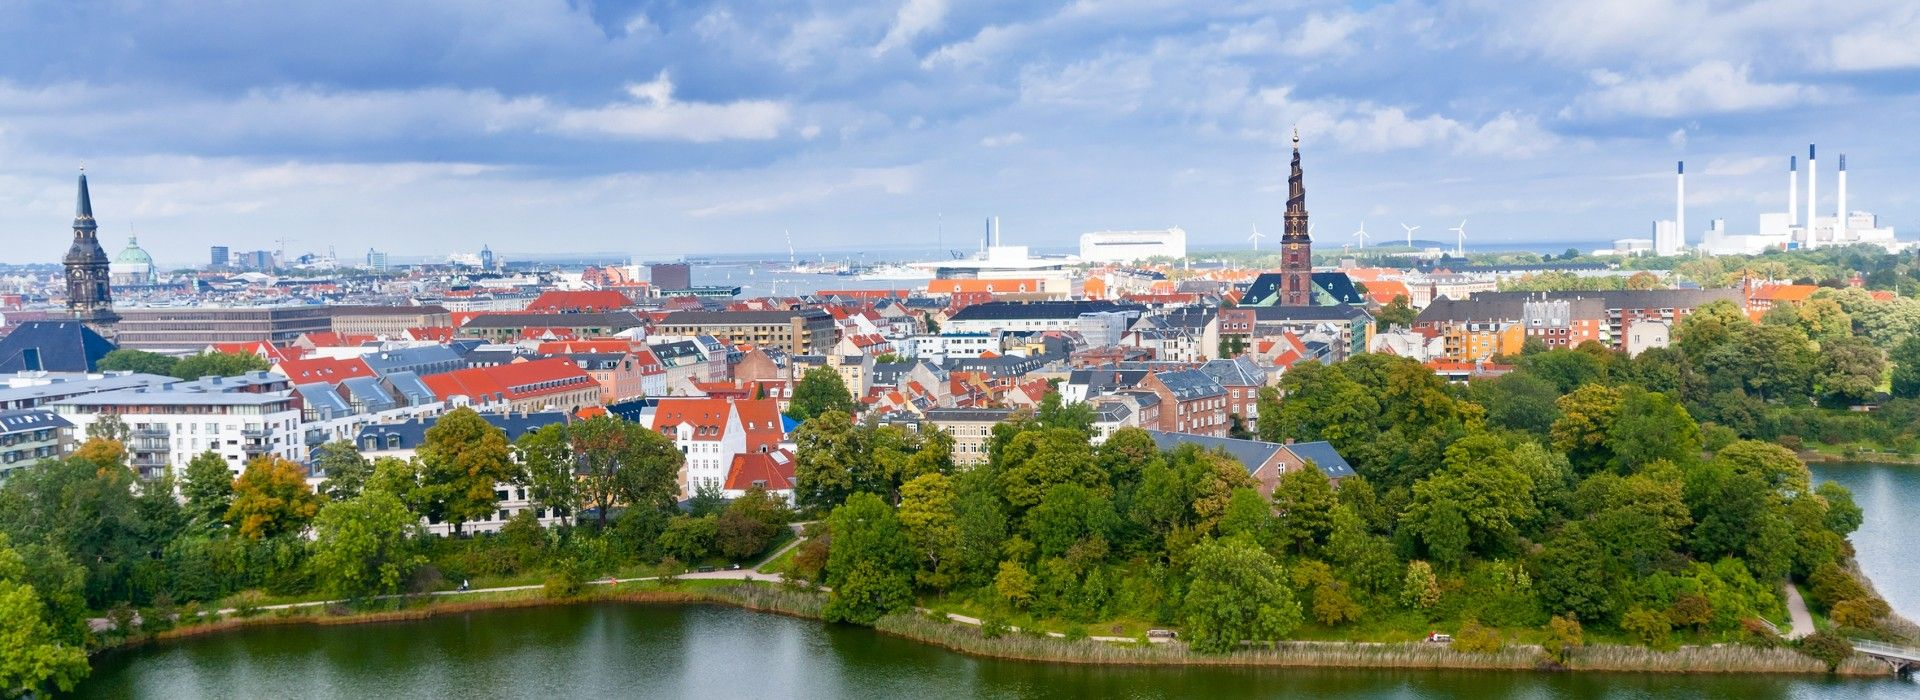 City sightseeing Tours in Europe